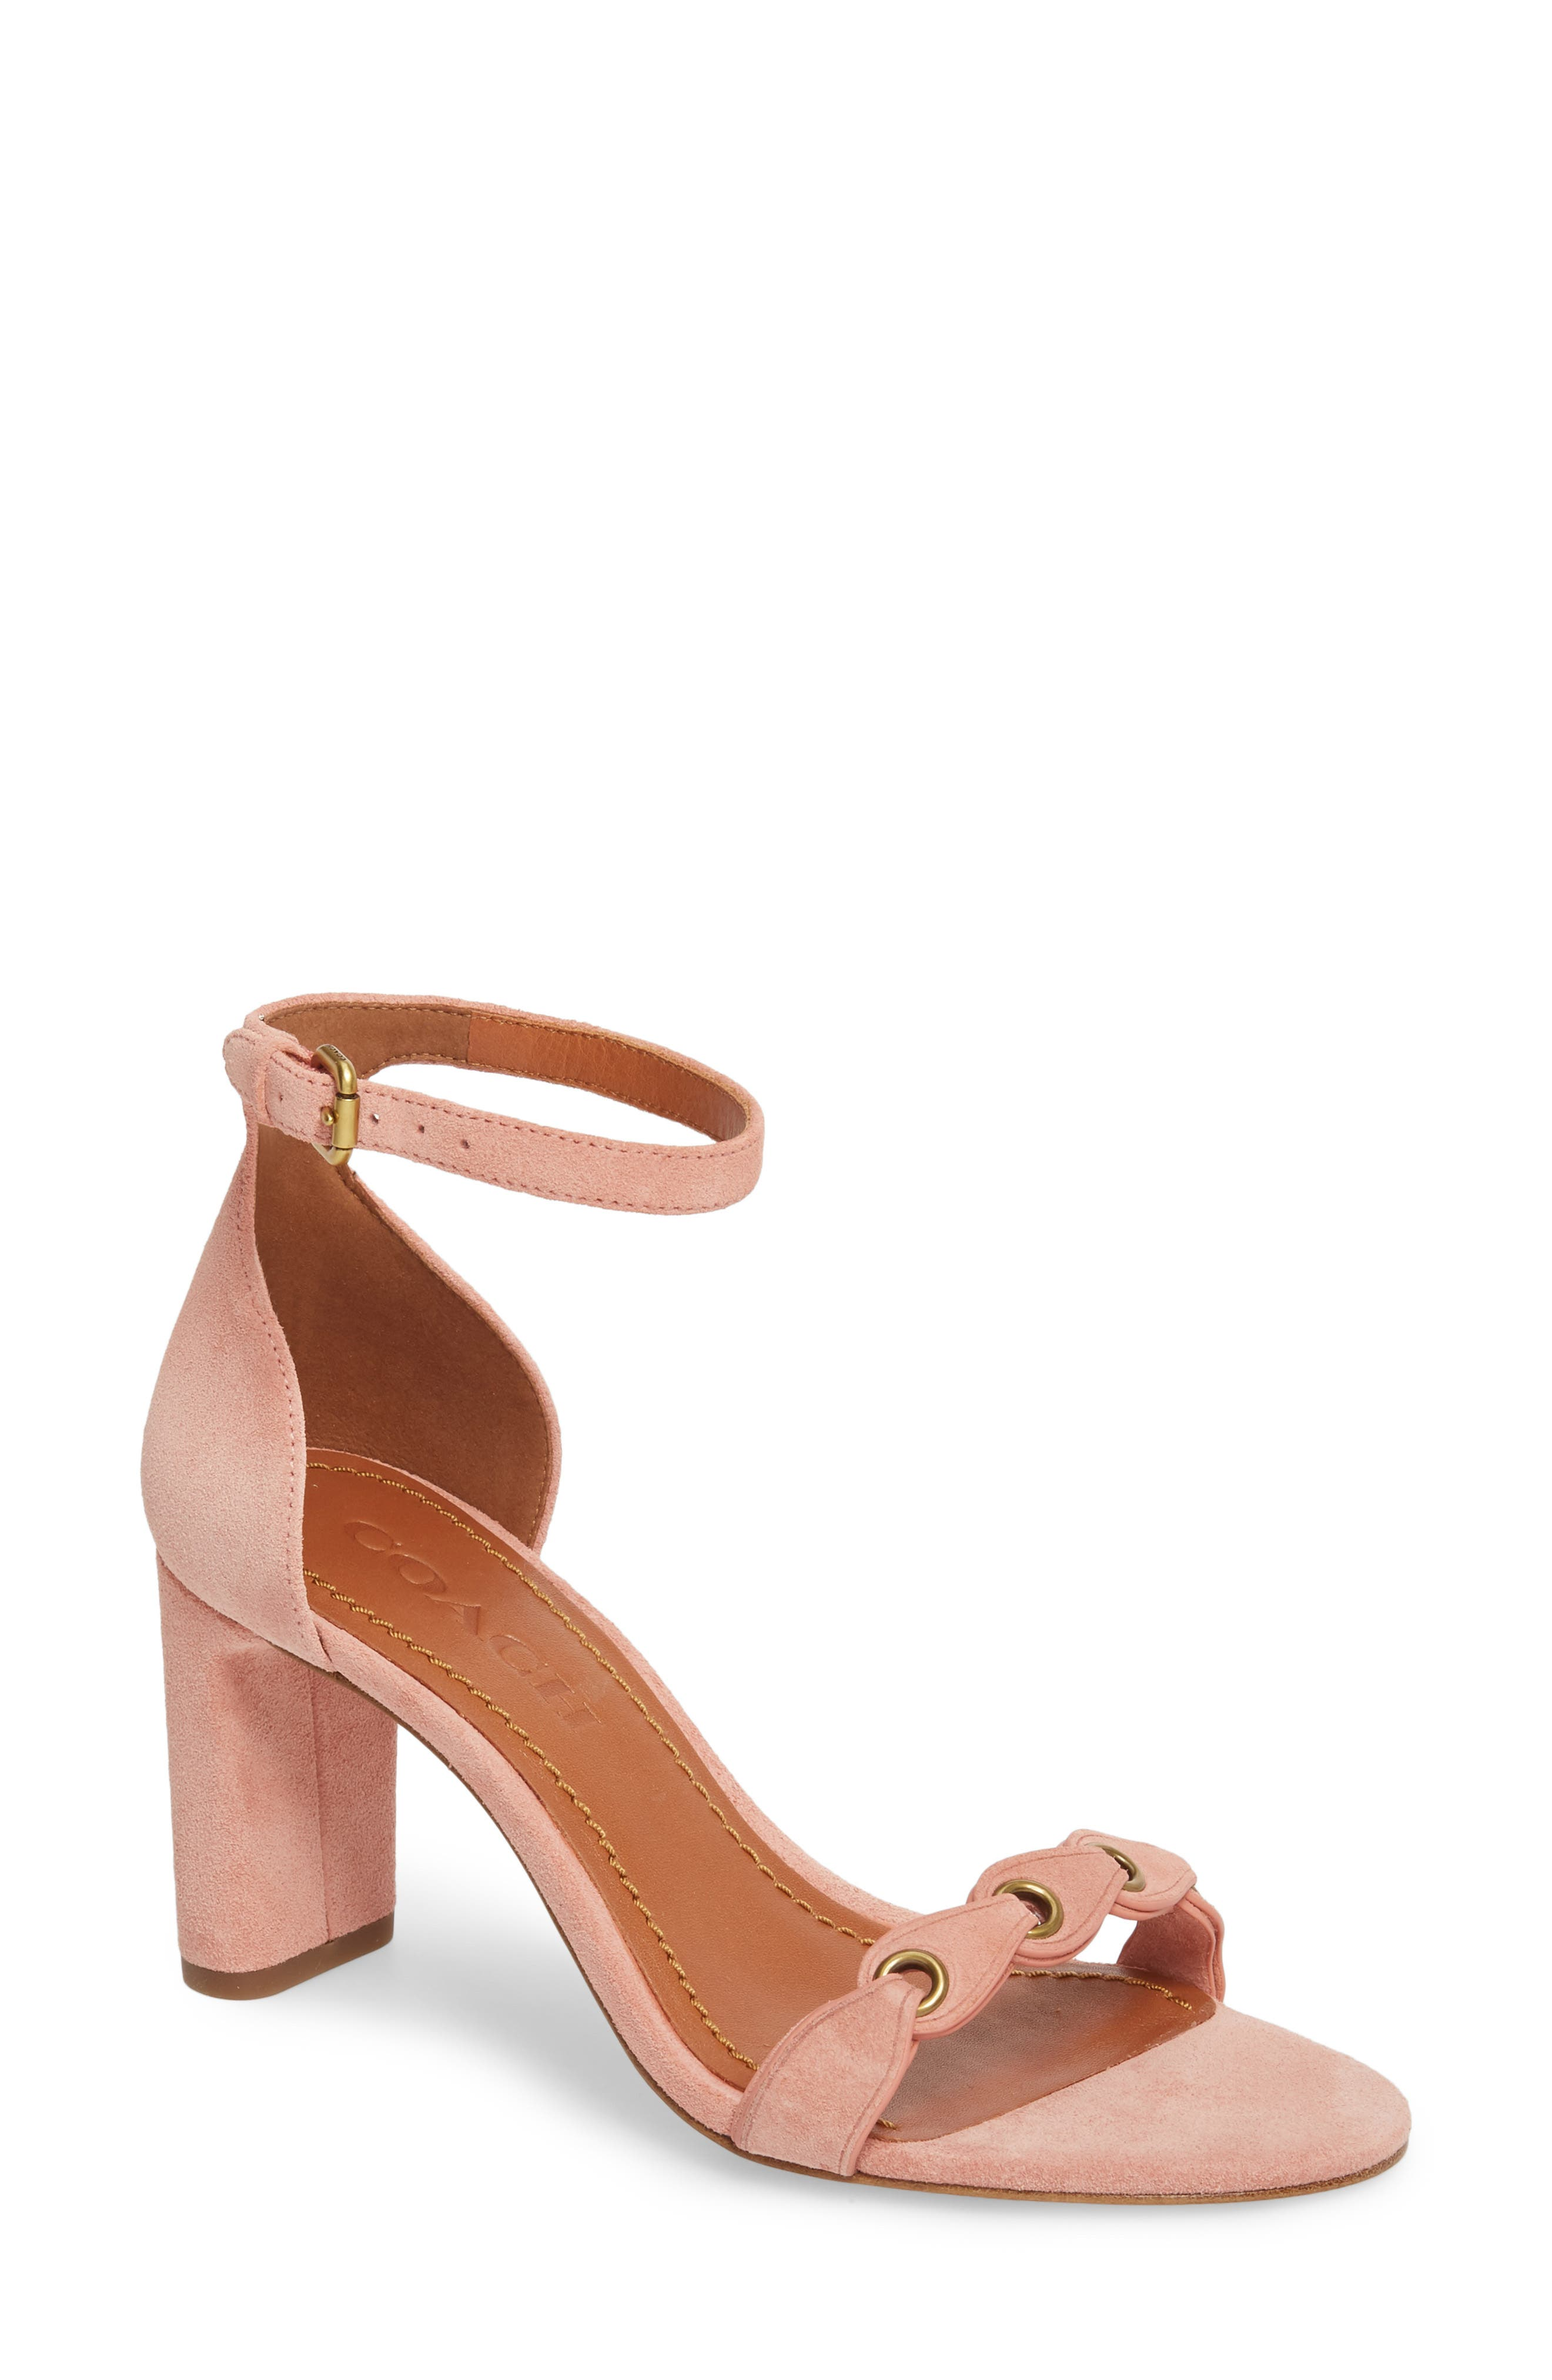 Link Strap Sandal,                         Main,                         color, 666